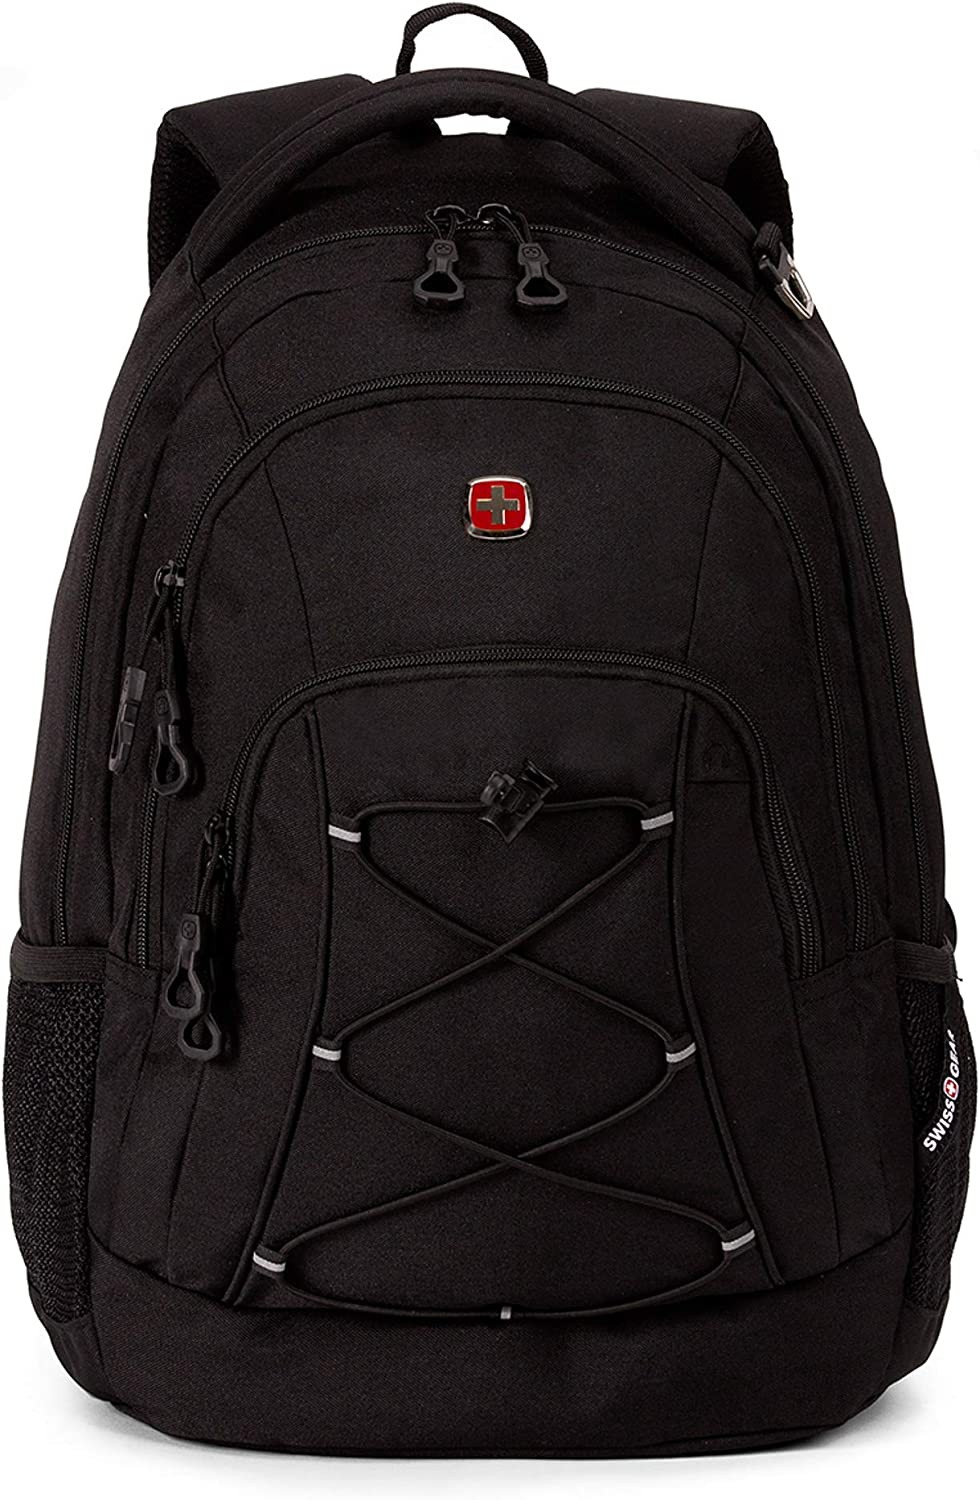 "SwissGear Travel Gear Lightweight Bungee Backpack - for School, Travel, Carry On, Professionals 17.5"" x 11.5"" x 7.5"""